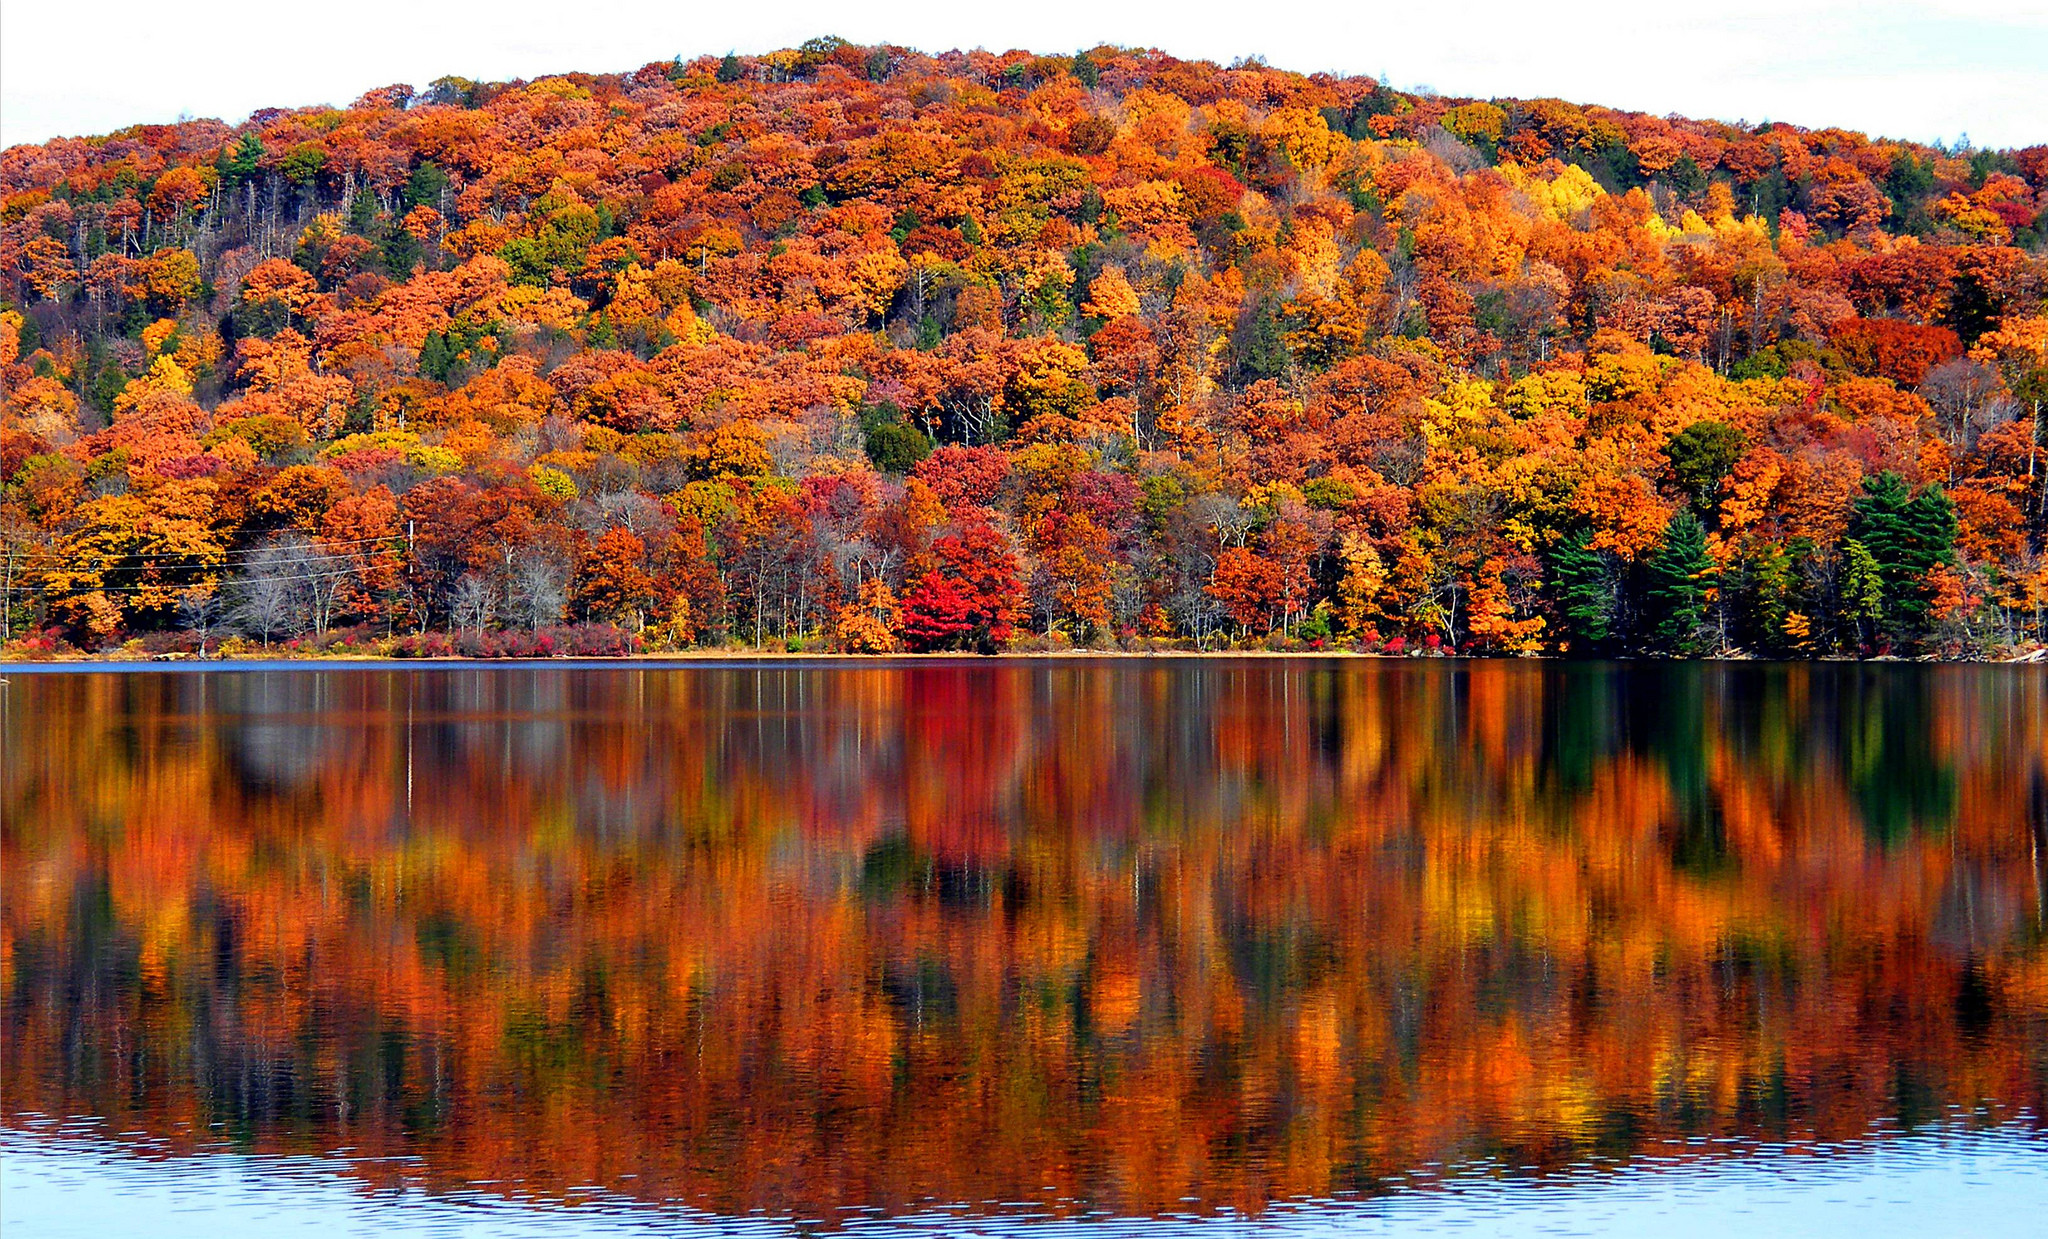 There's still time to see fall foliage – Vox